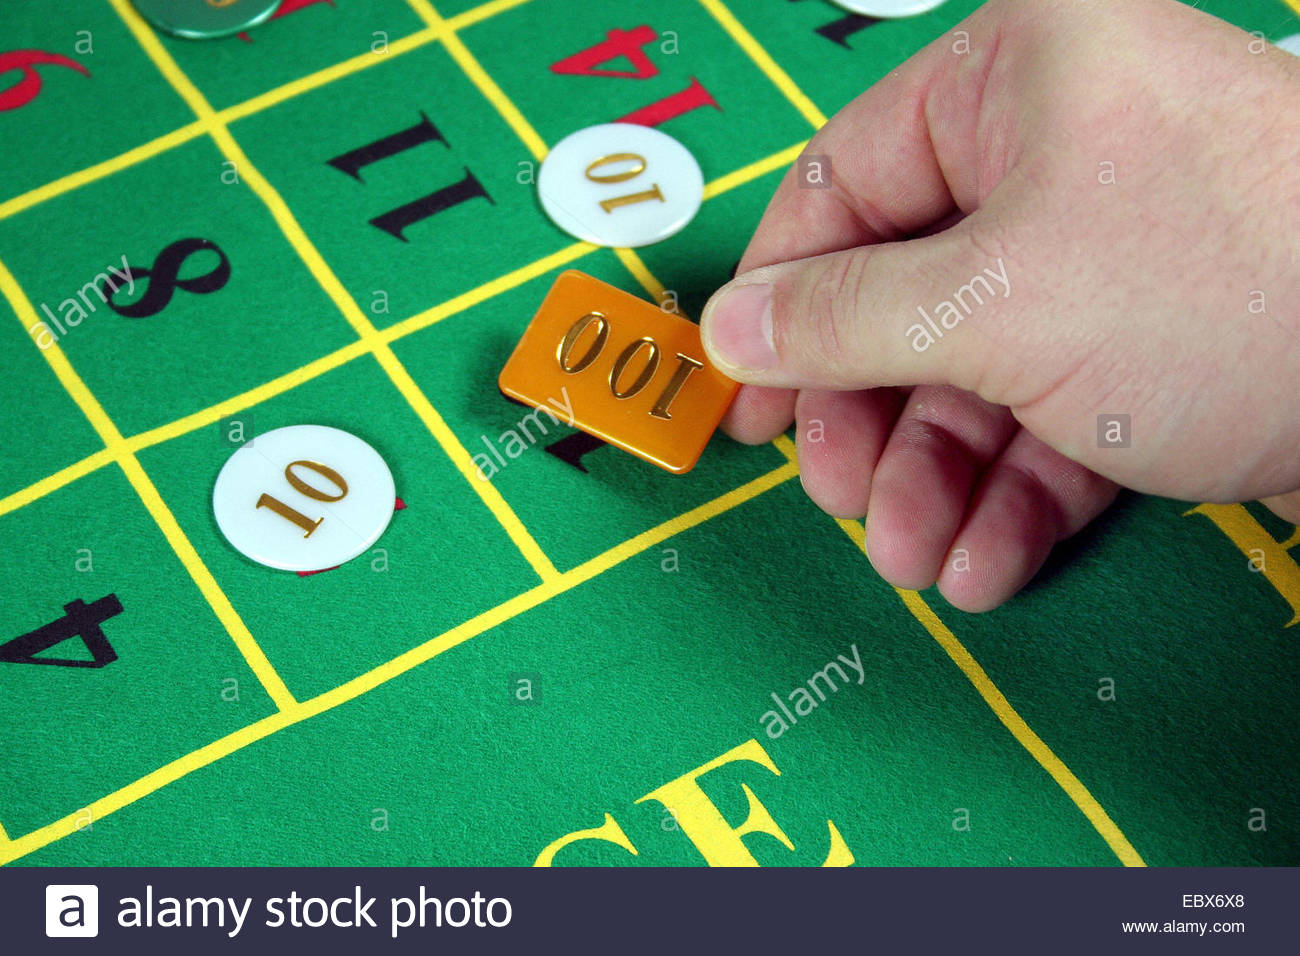 at the Roulette table - Stock Image